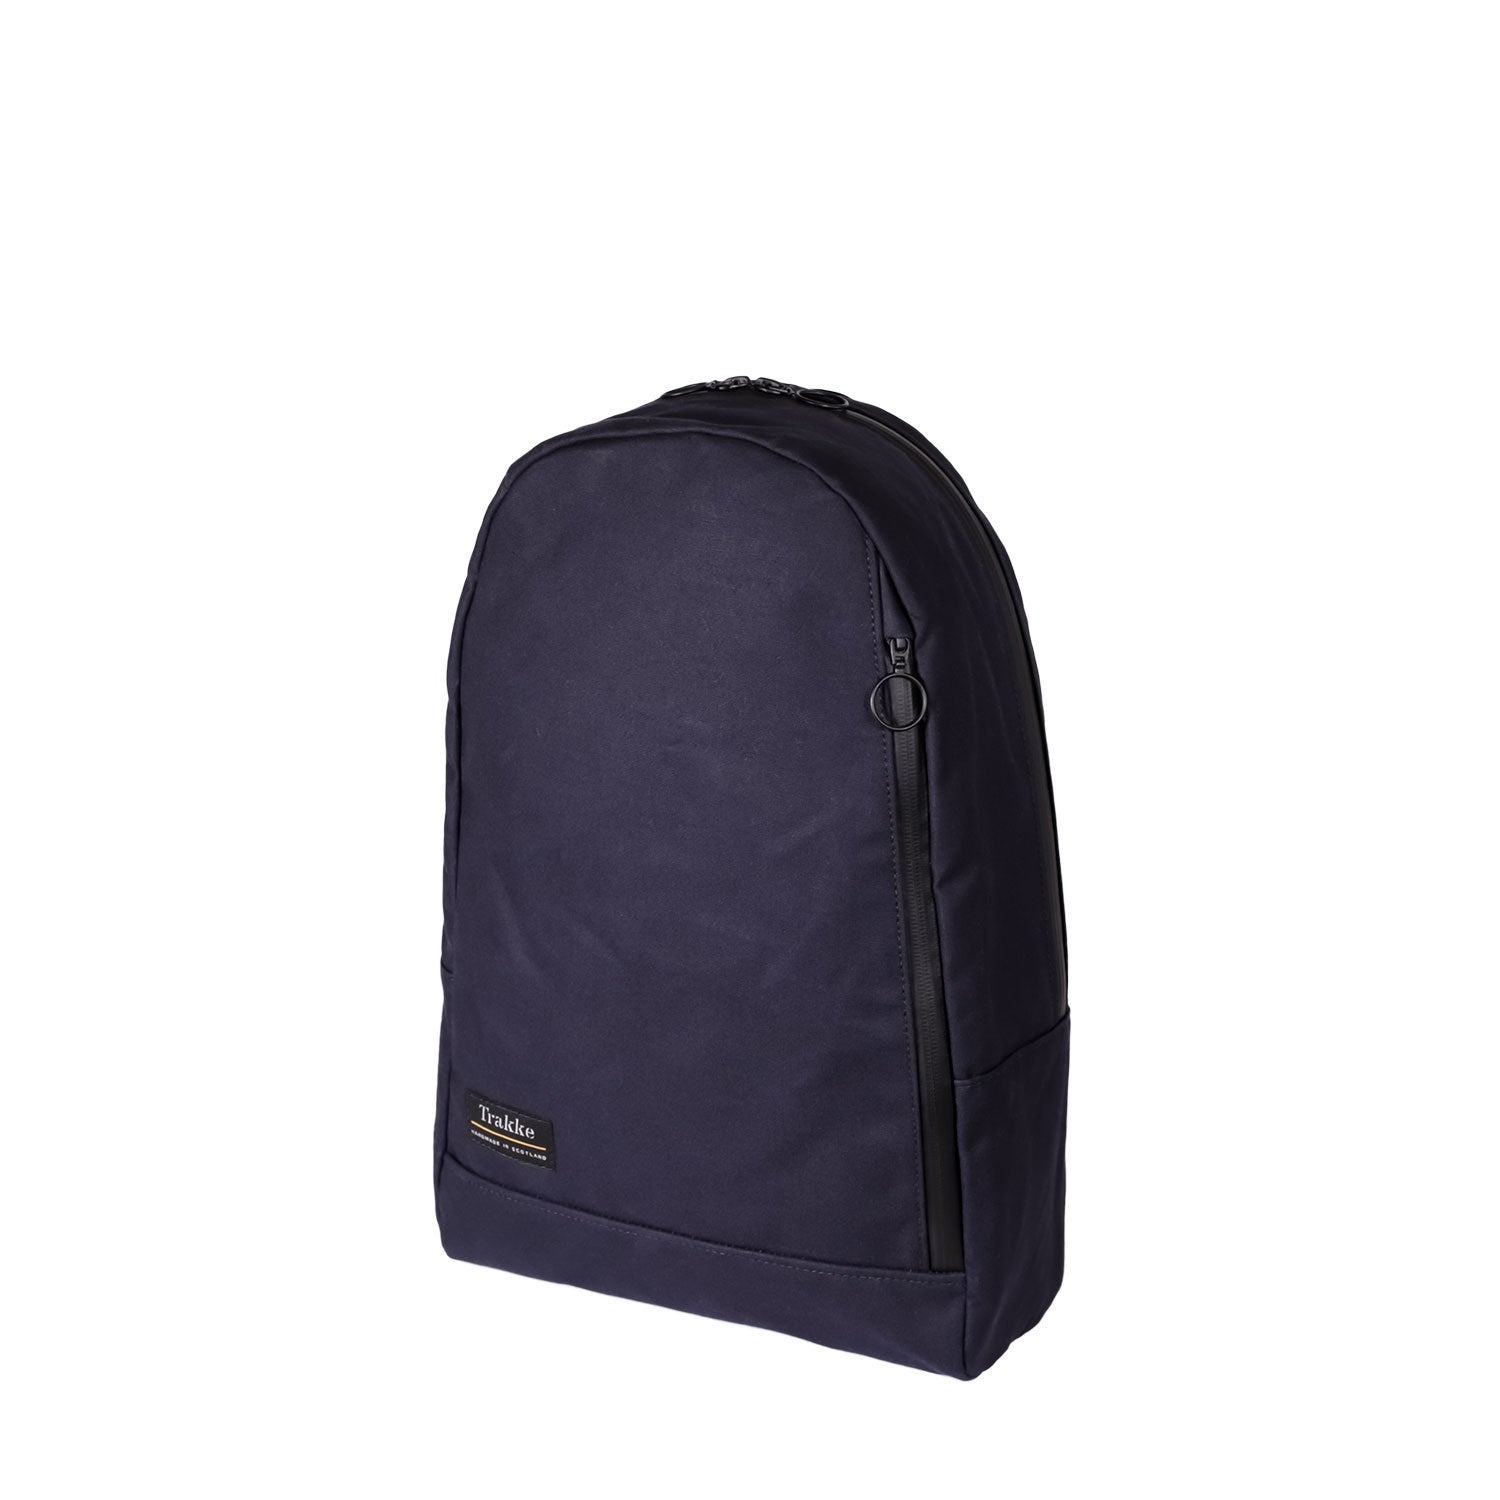 Trakke | NEW Fingal Backpack | Waxed Canvas Backpack | Laptop Rucksack - Navy